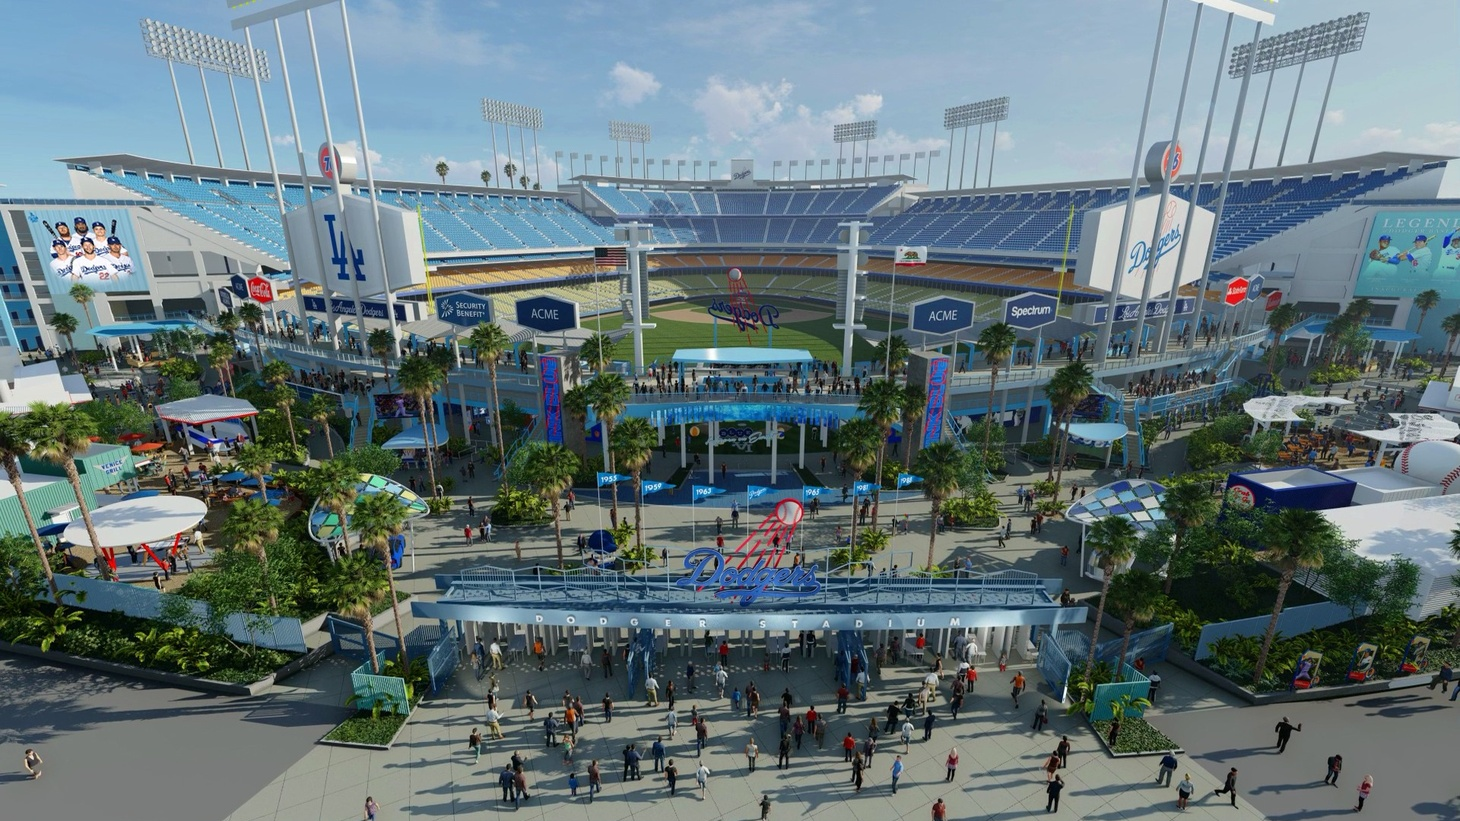 A rendering of the new Dodger Stadium.